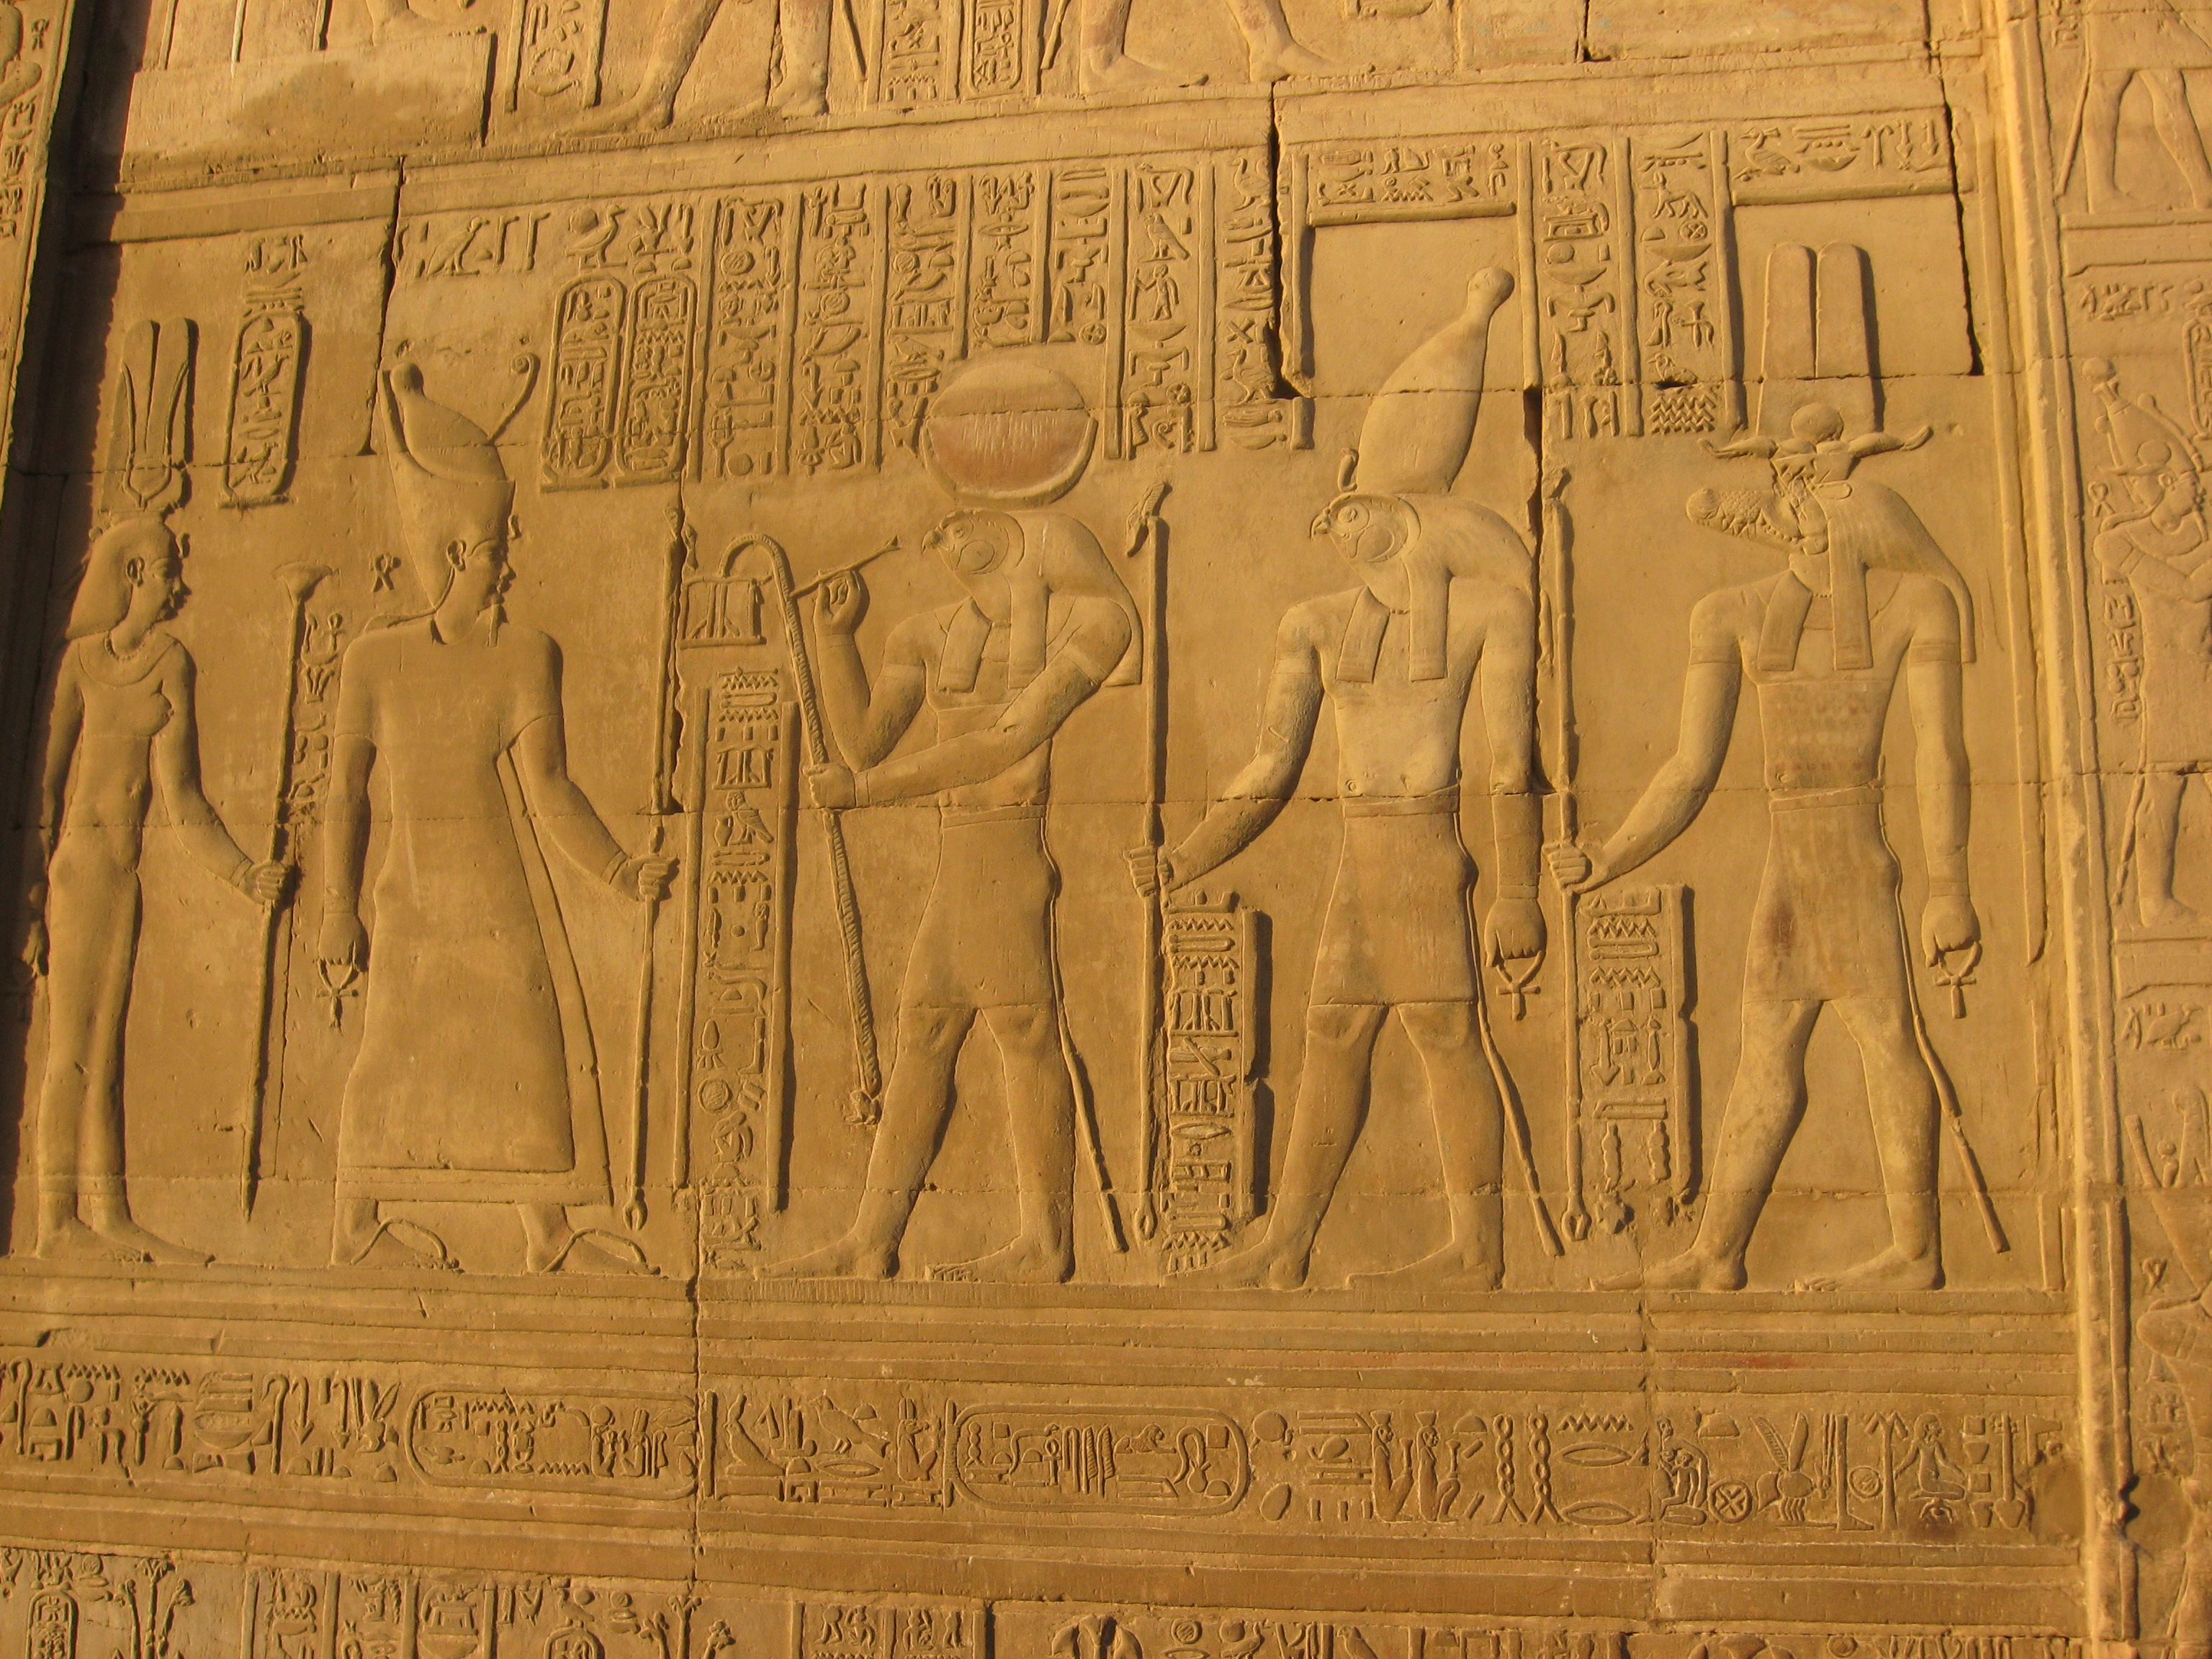 File:Kom Ombo 06 977.PNG - Wikipedia, the free encyclopedia